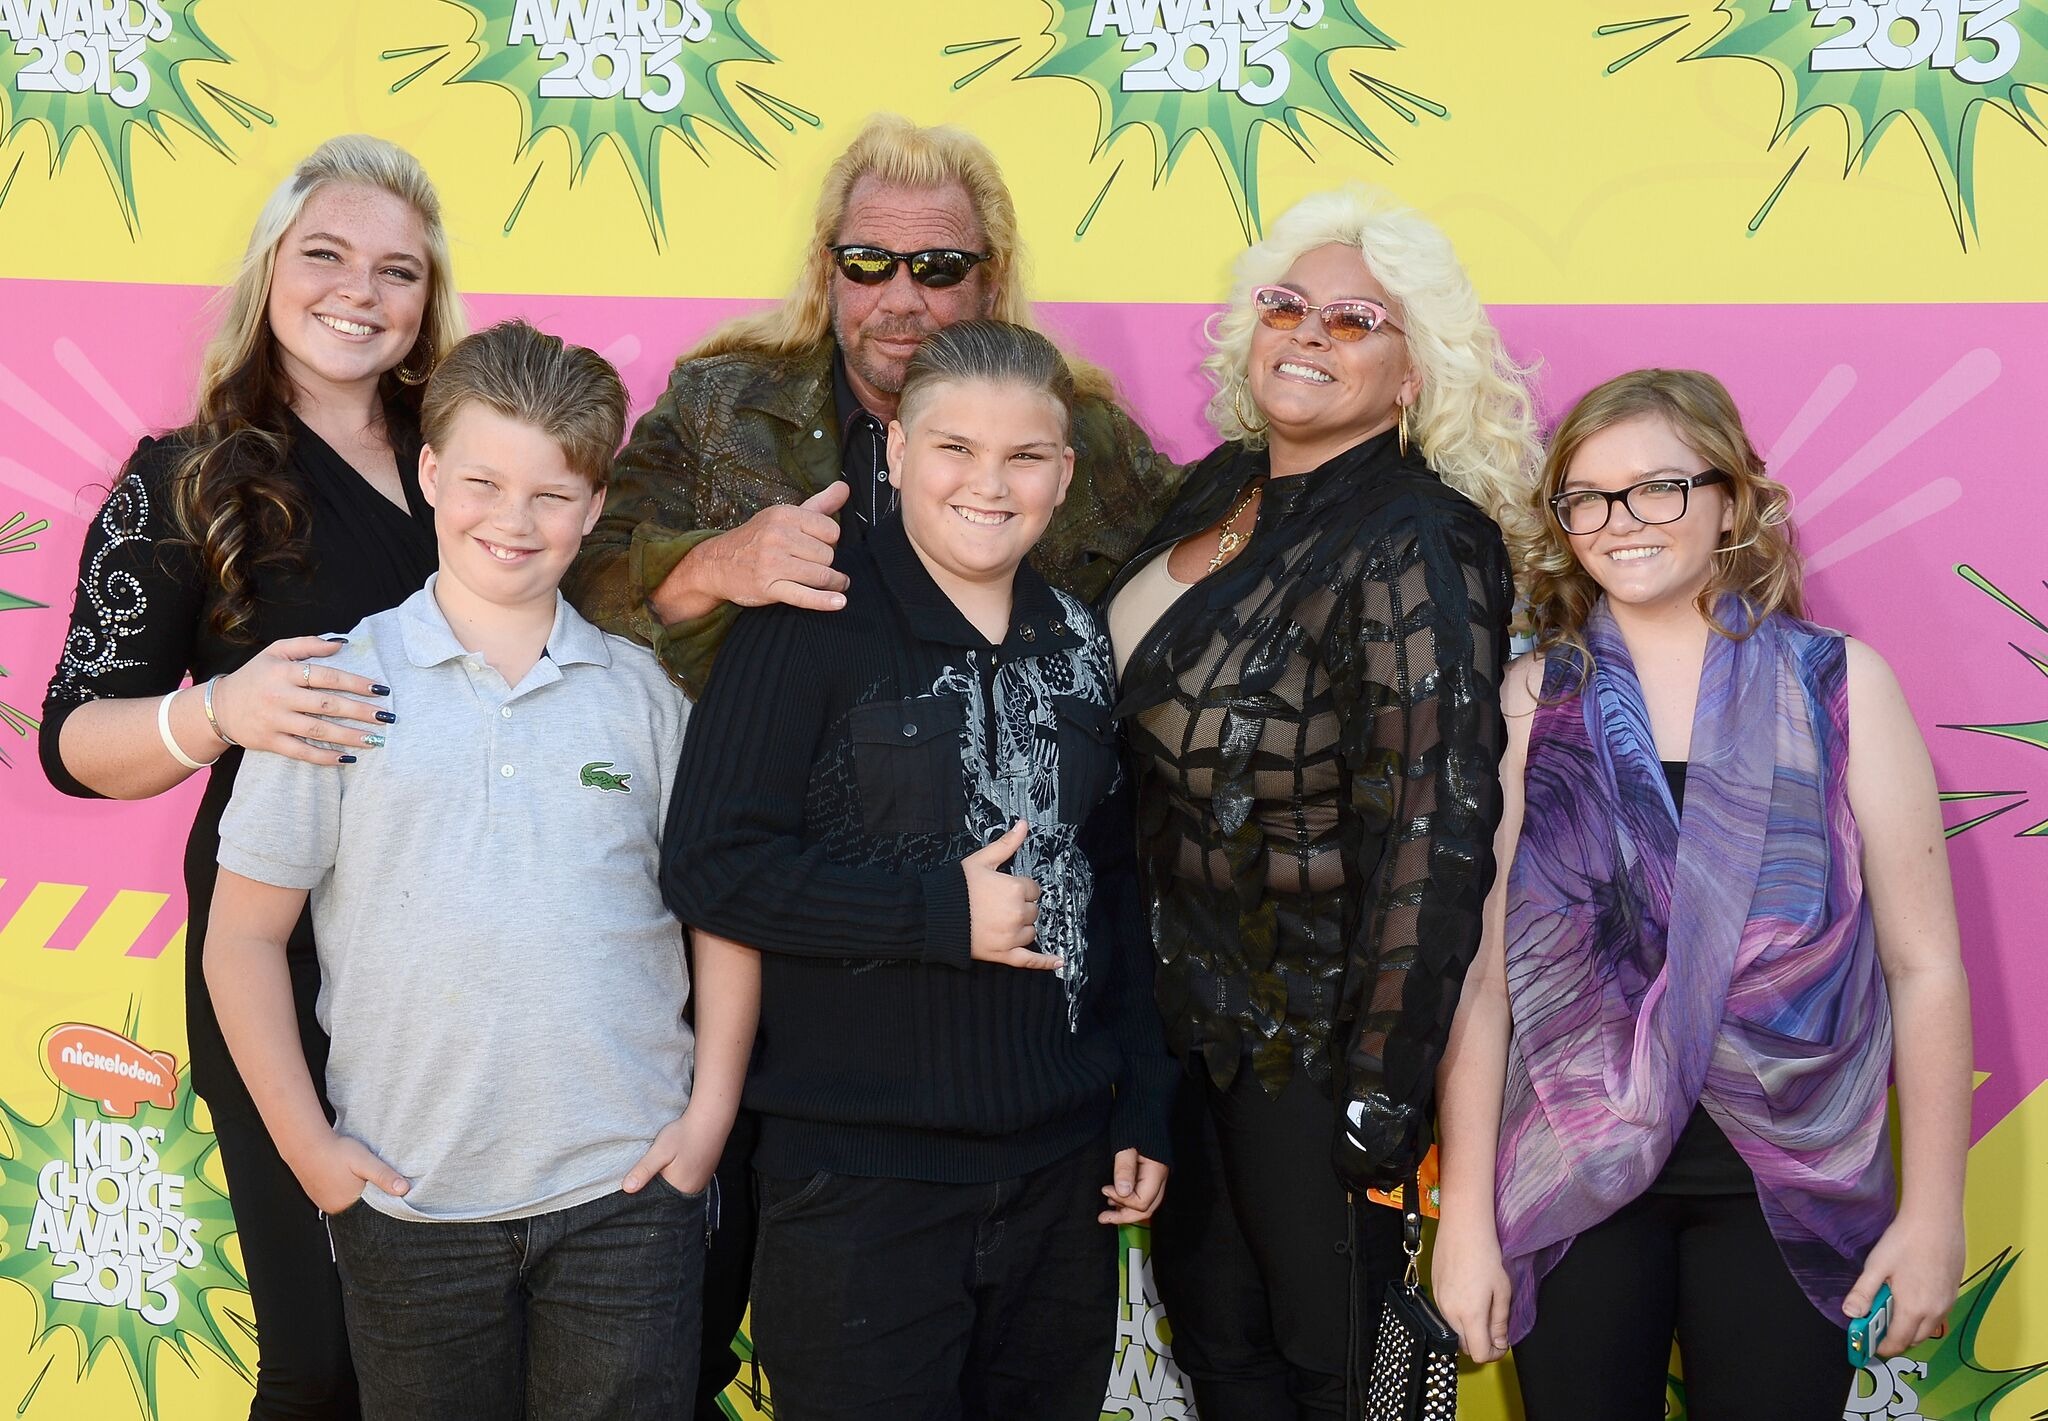 TV personality Duane 'Dog' Chapman (C) and family arrive at Nickelodeon's 26th Annual Kids' Choice Awards at USC Galen Center  | Getty Images